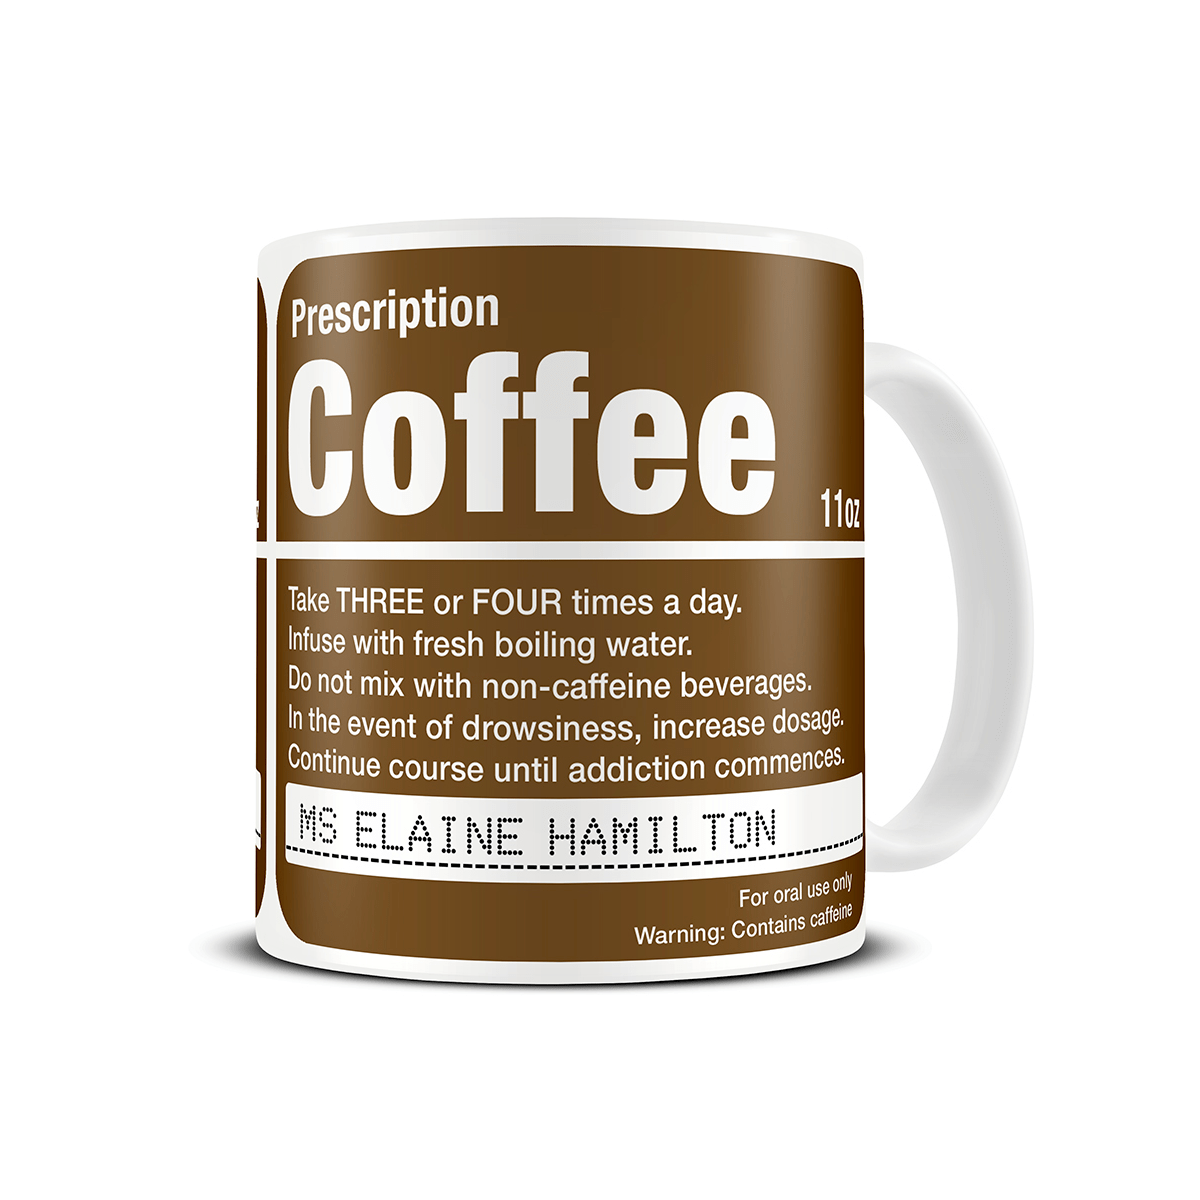 pharmacist-gift-prescription-coffee-mug